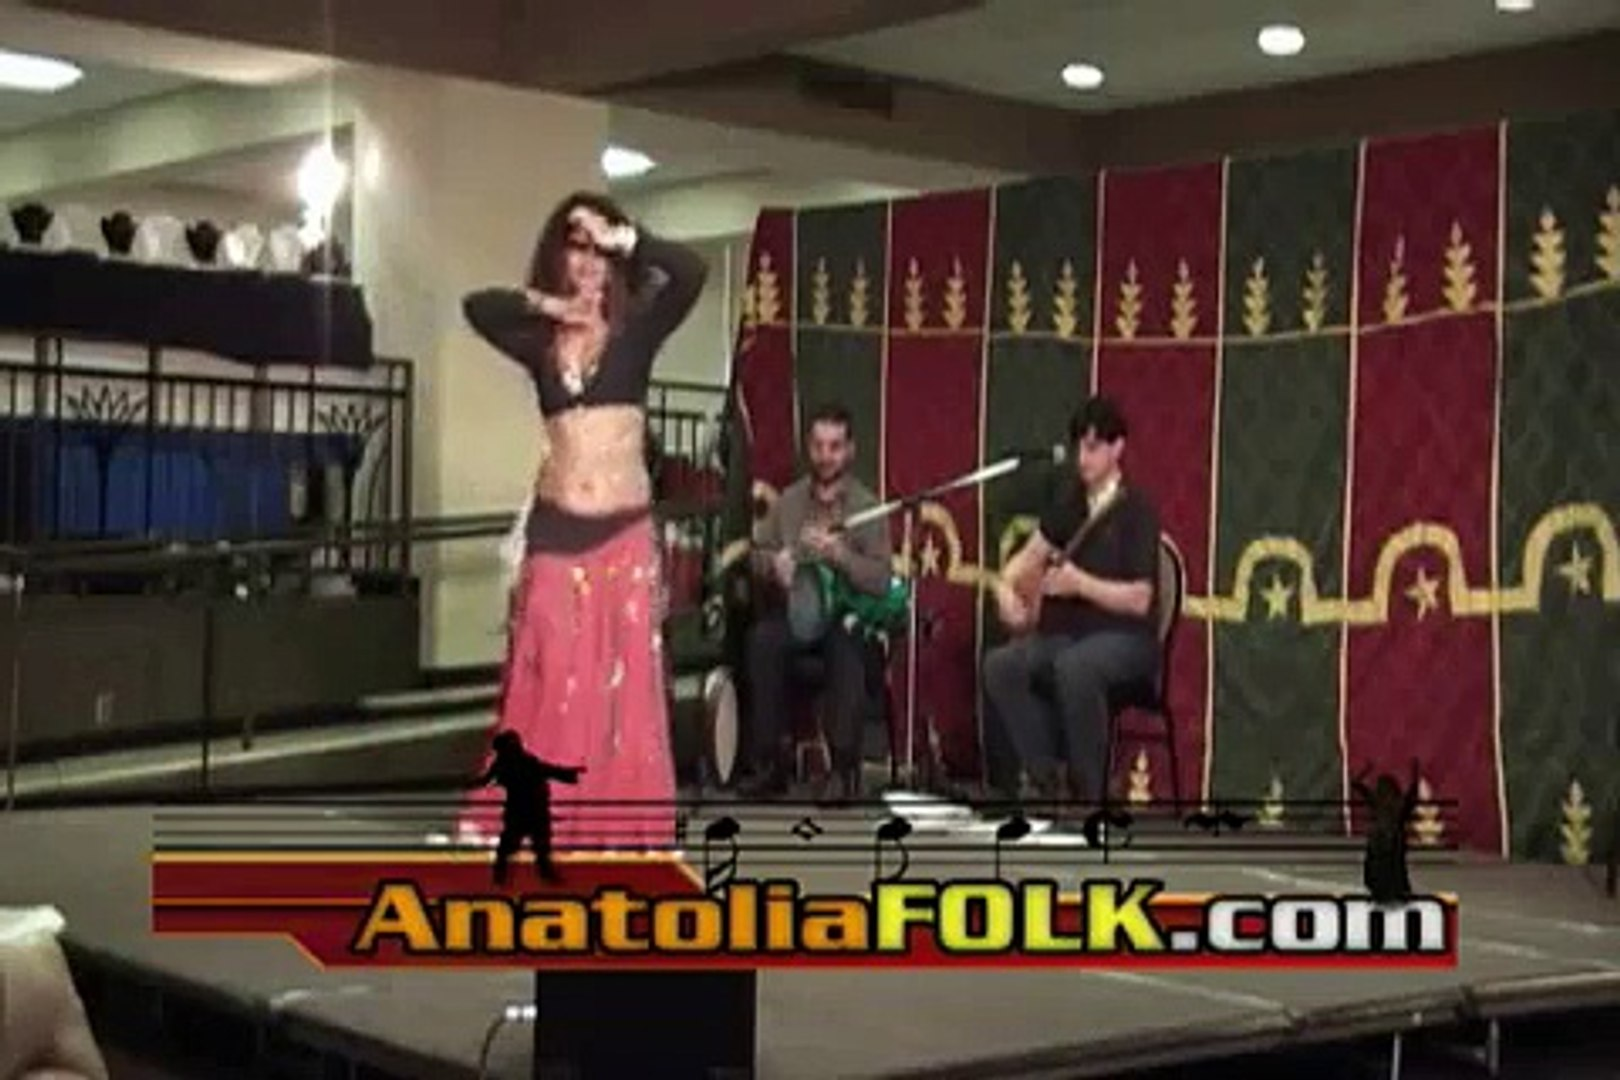 Persian Belly Dance with Live Anatoliafolk.com musicians  LA